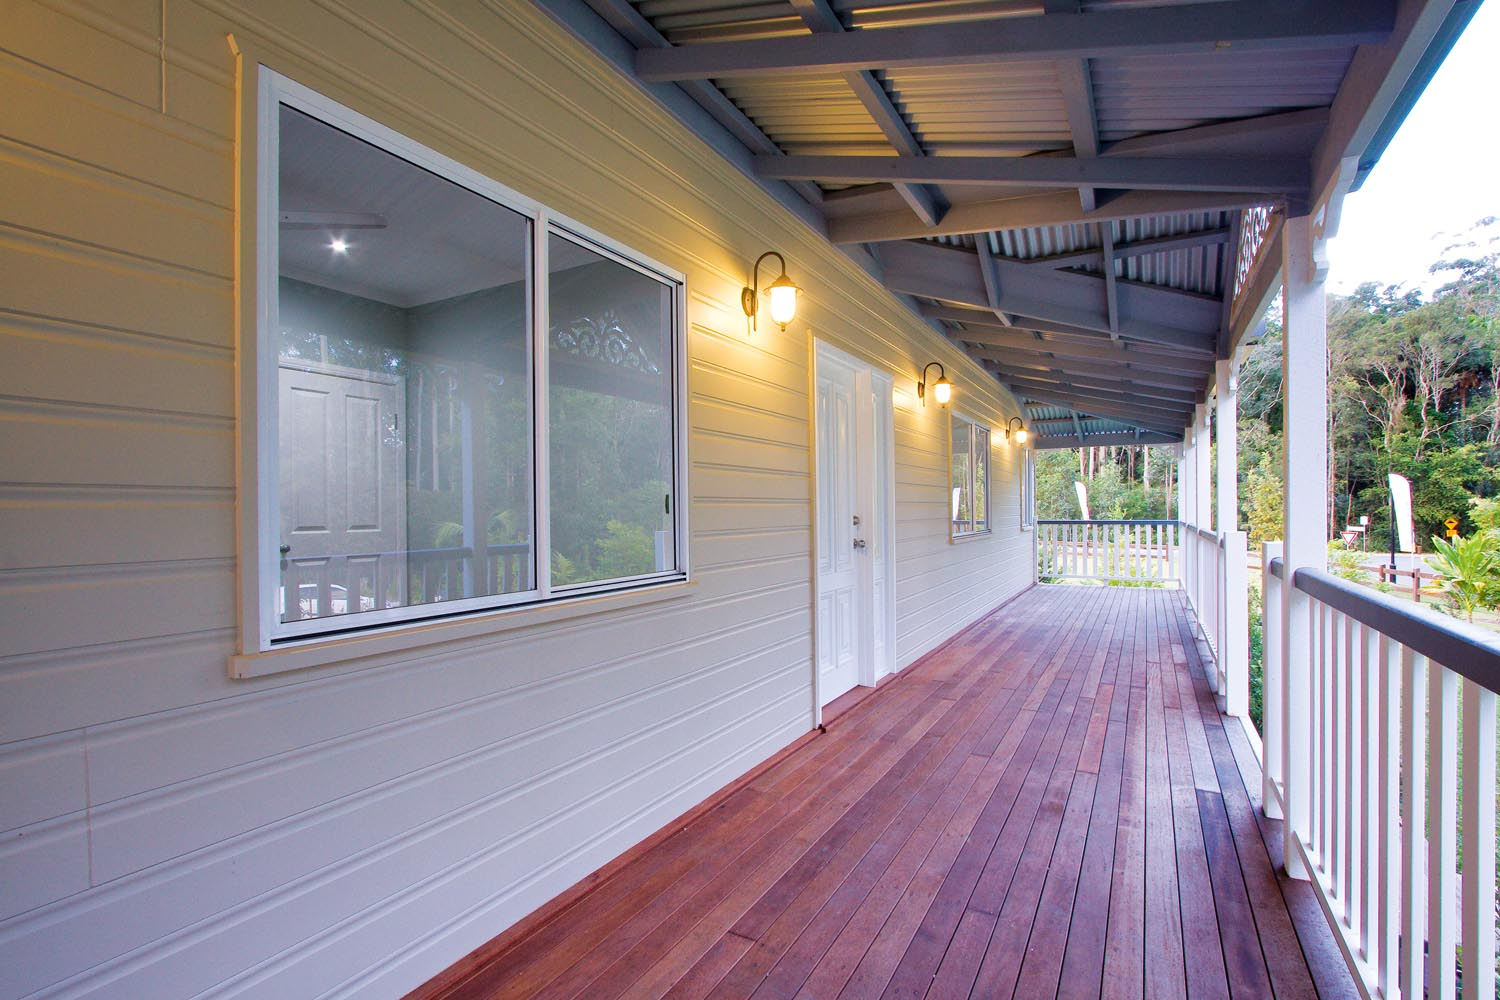 More for less: a classic Queenslander home - verandah outside house